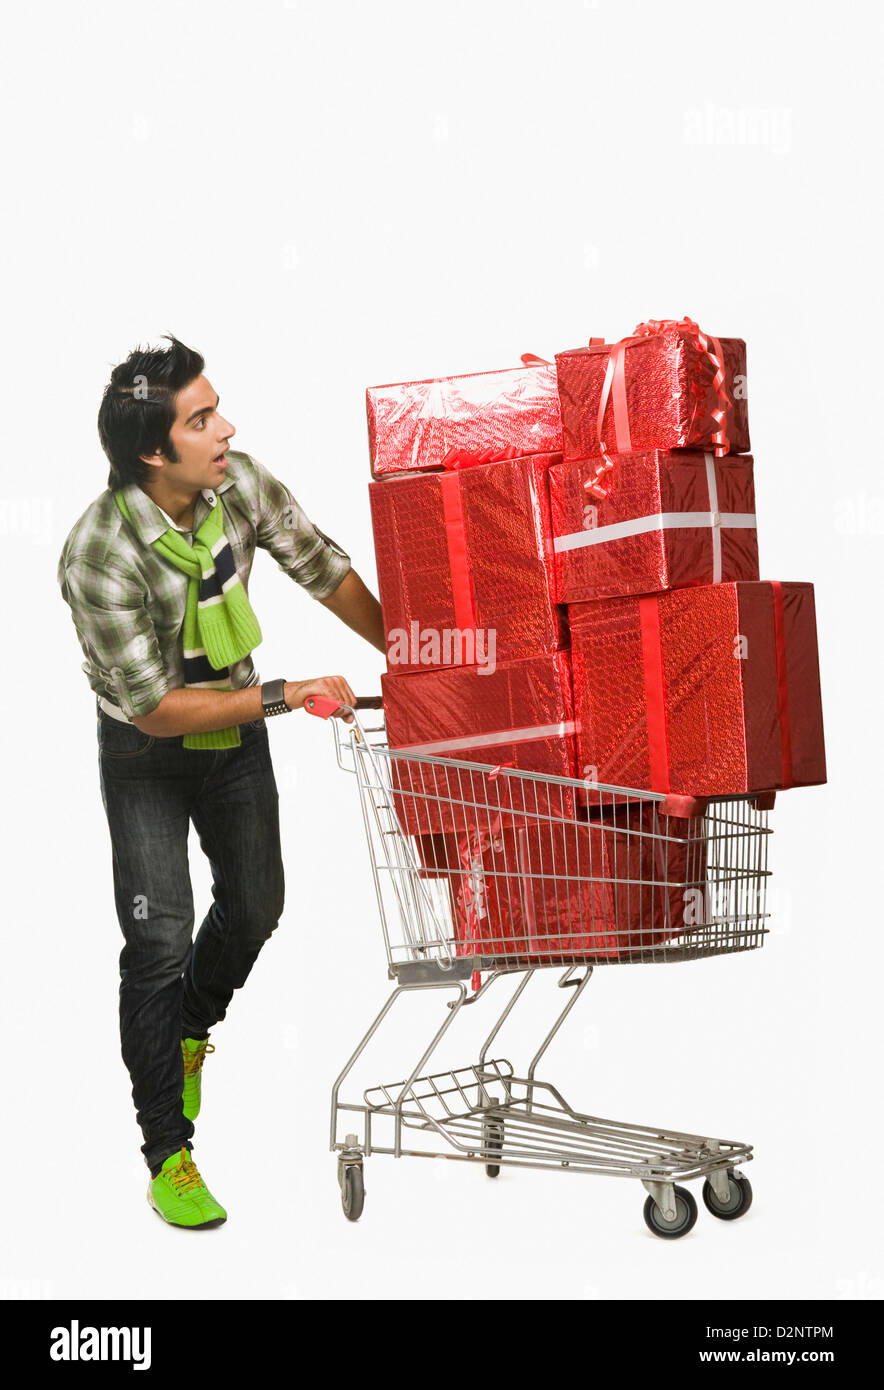 Man pushing a shopping cart filled with gifts and looking surprised - Stock Image